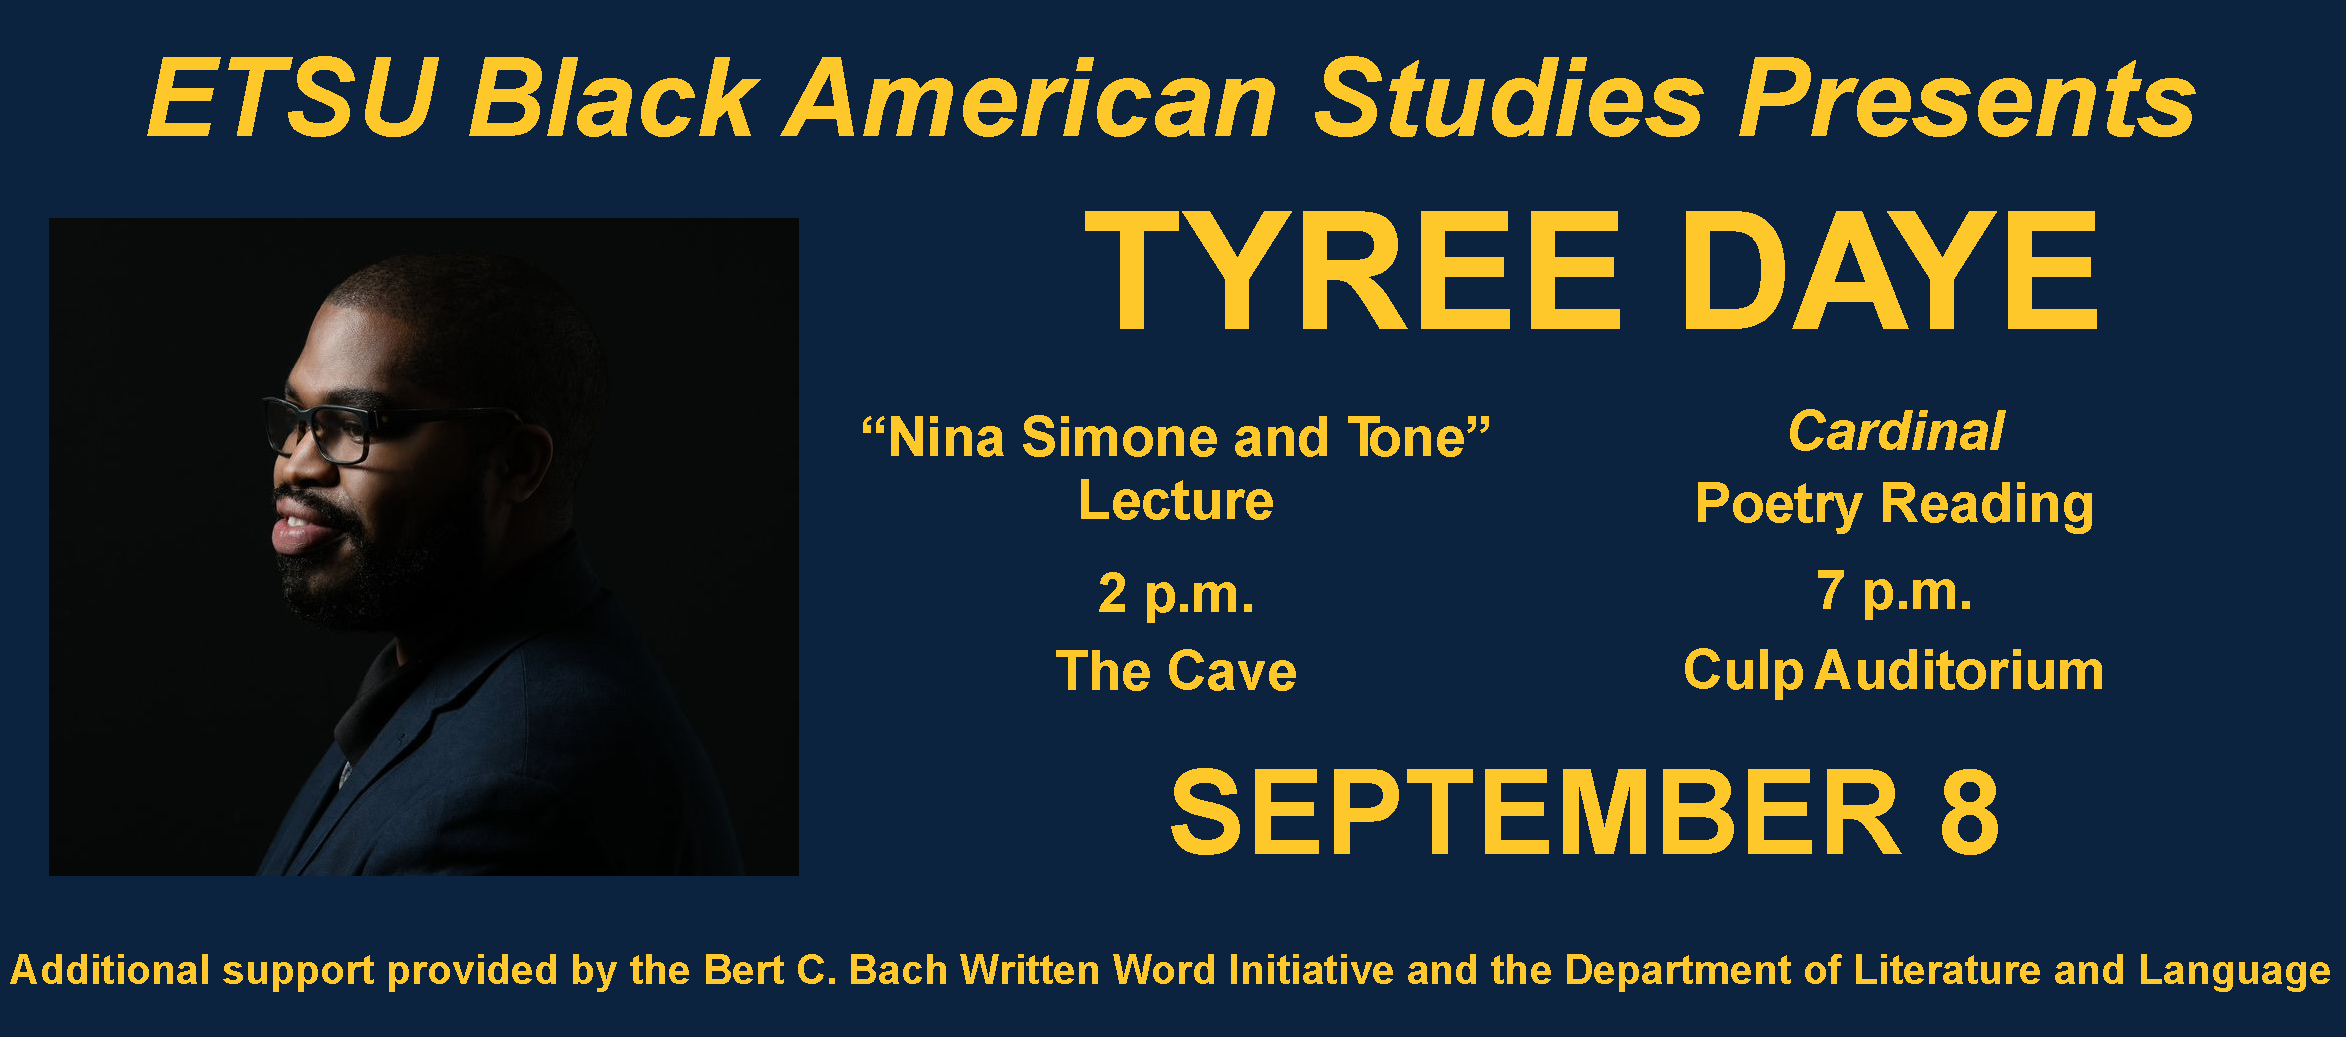 Tyree Daye with Event Information